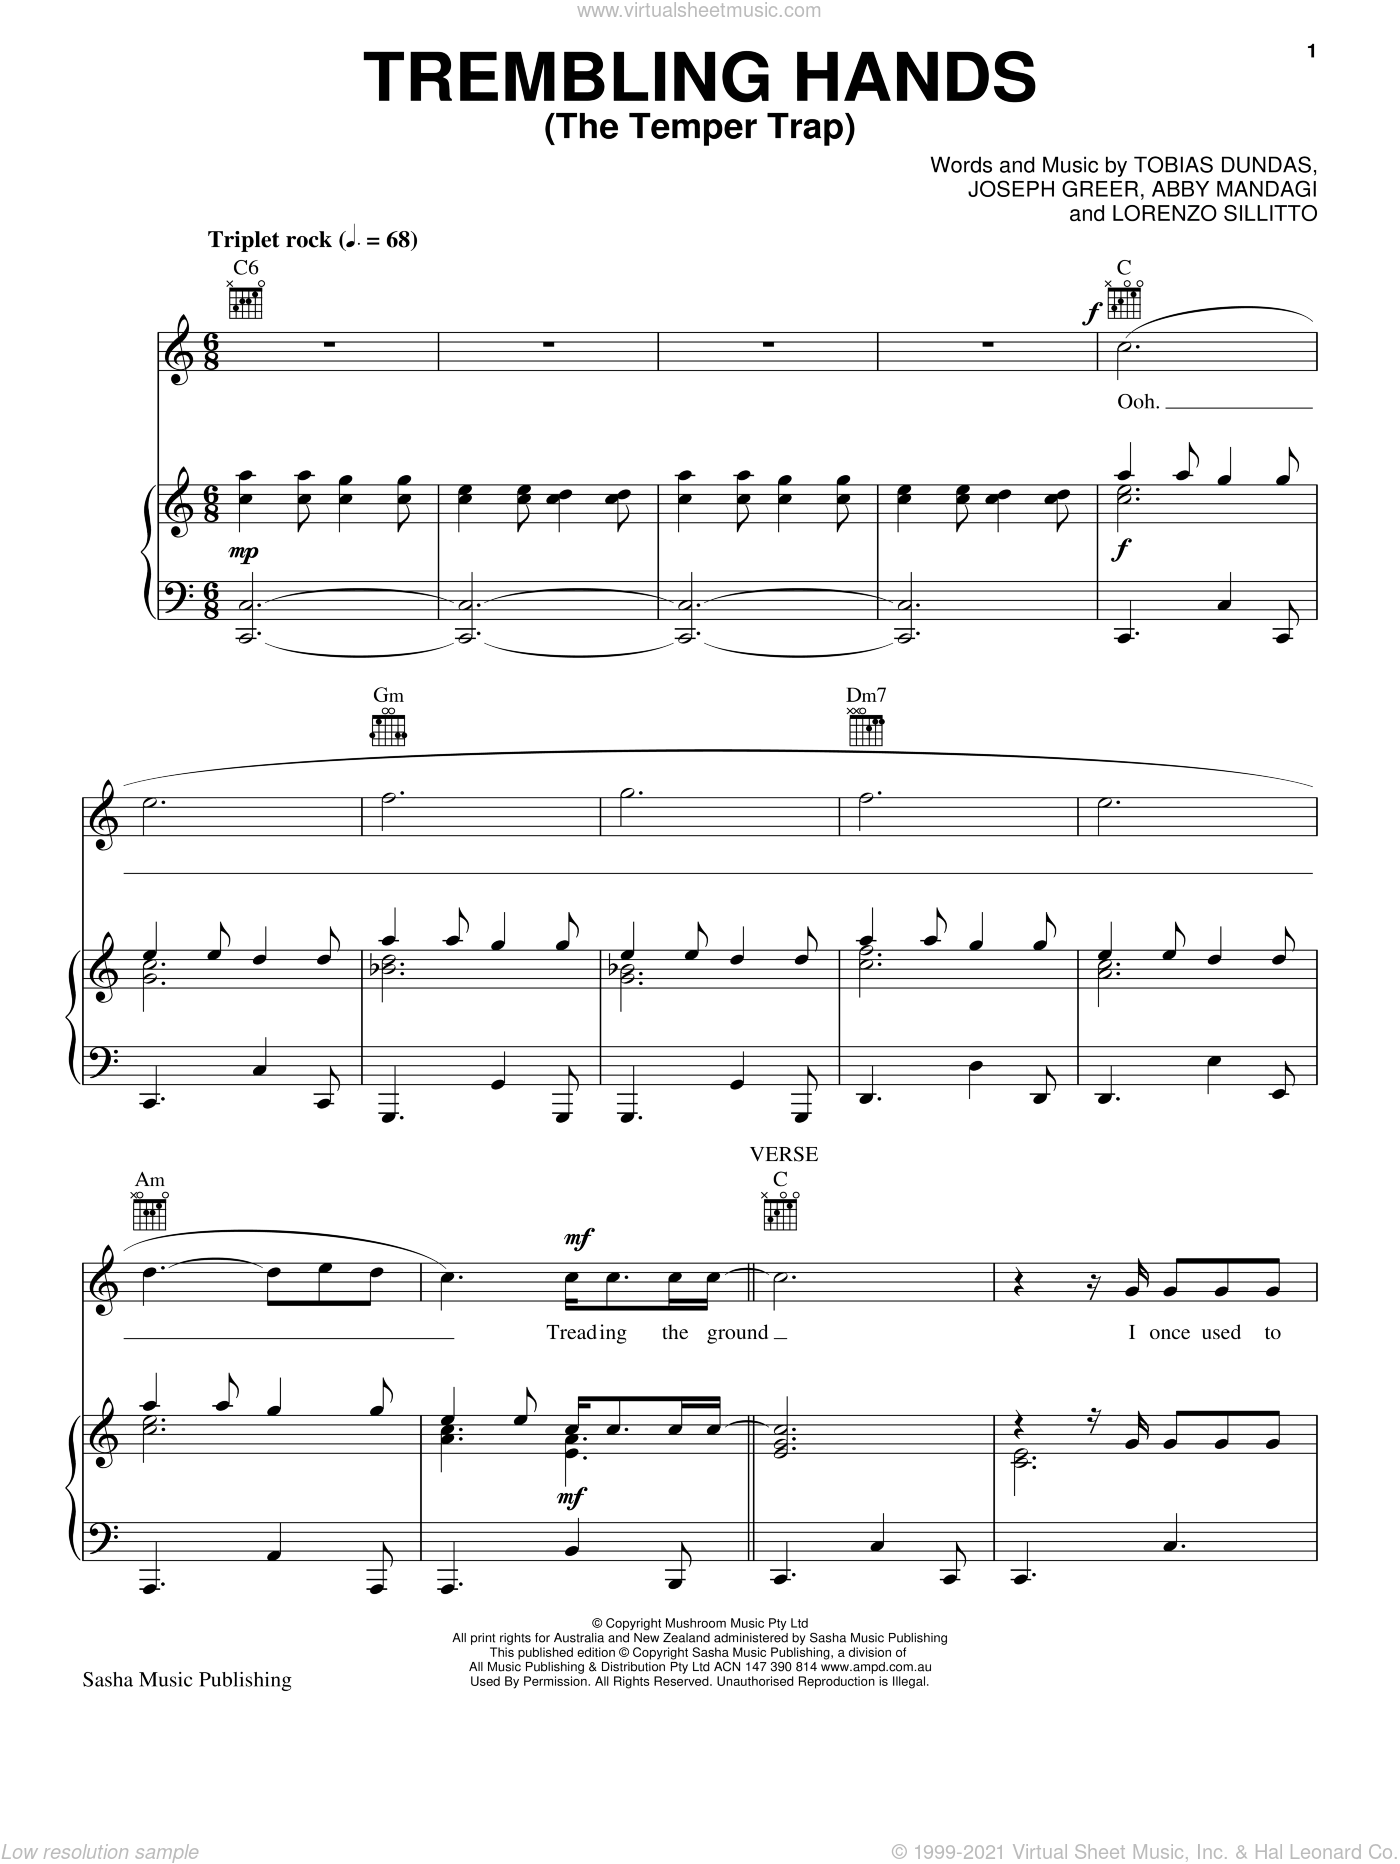 Trembling Hands sheet music for voice, piano or guitar by Tobias Dundas